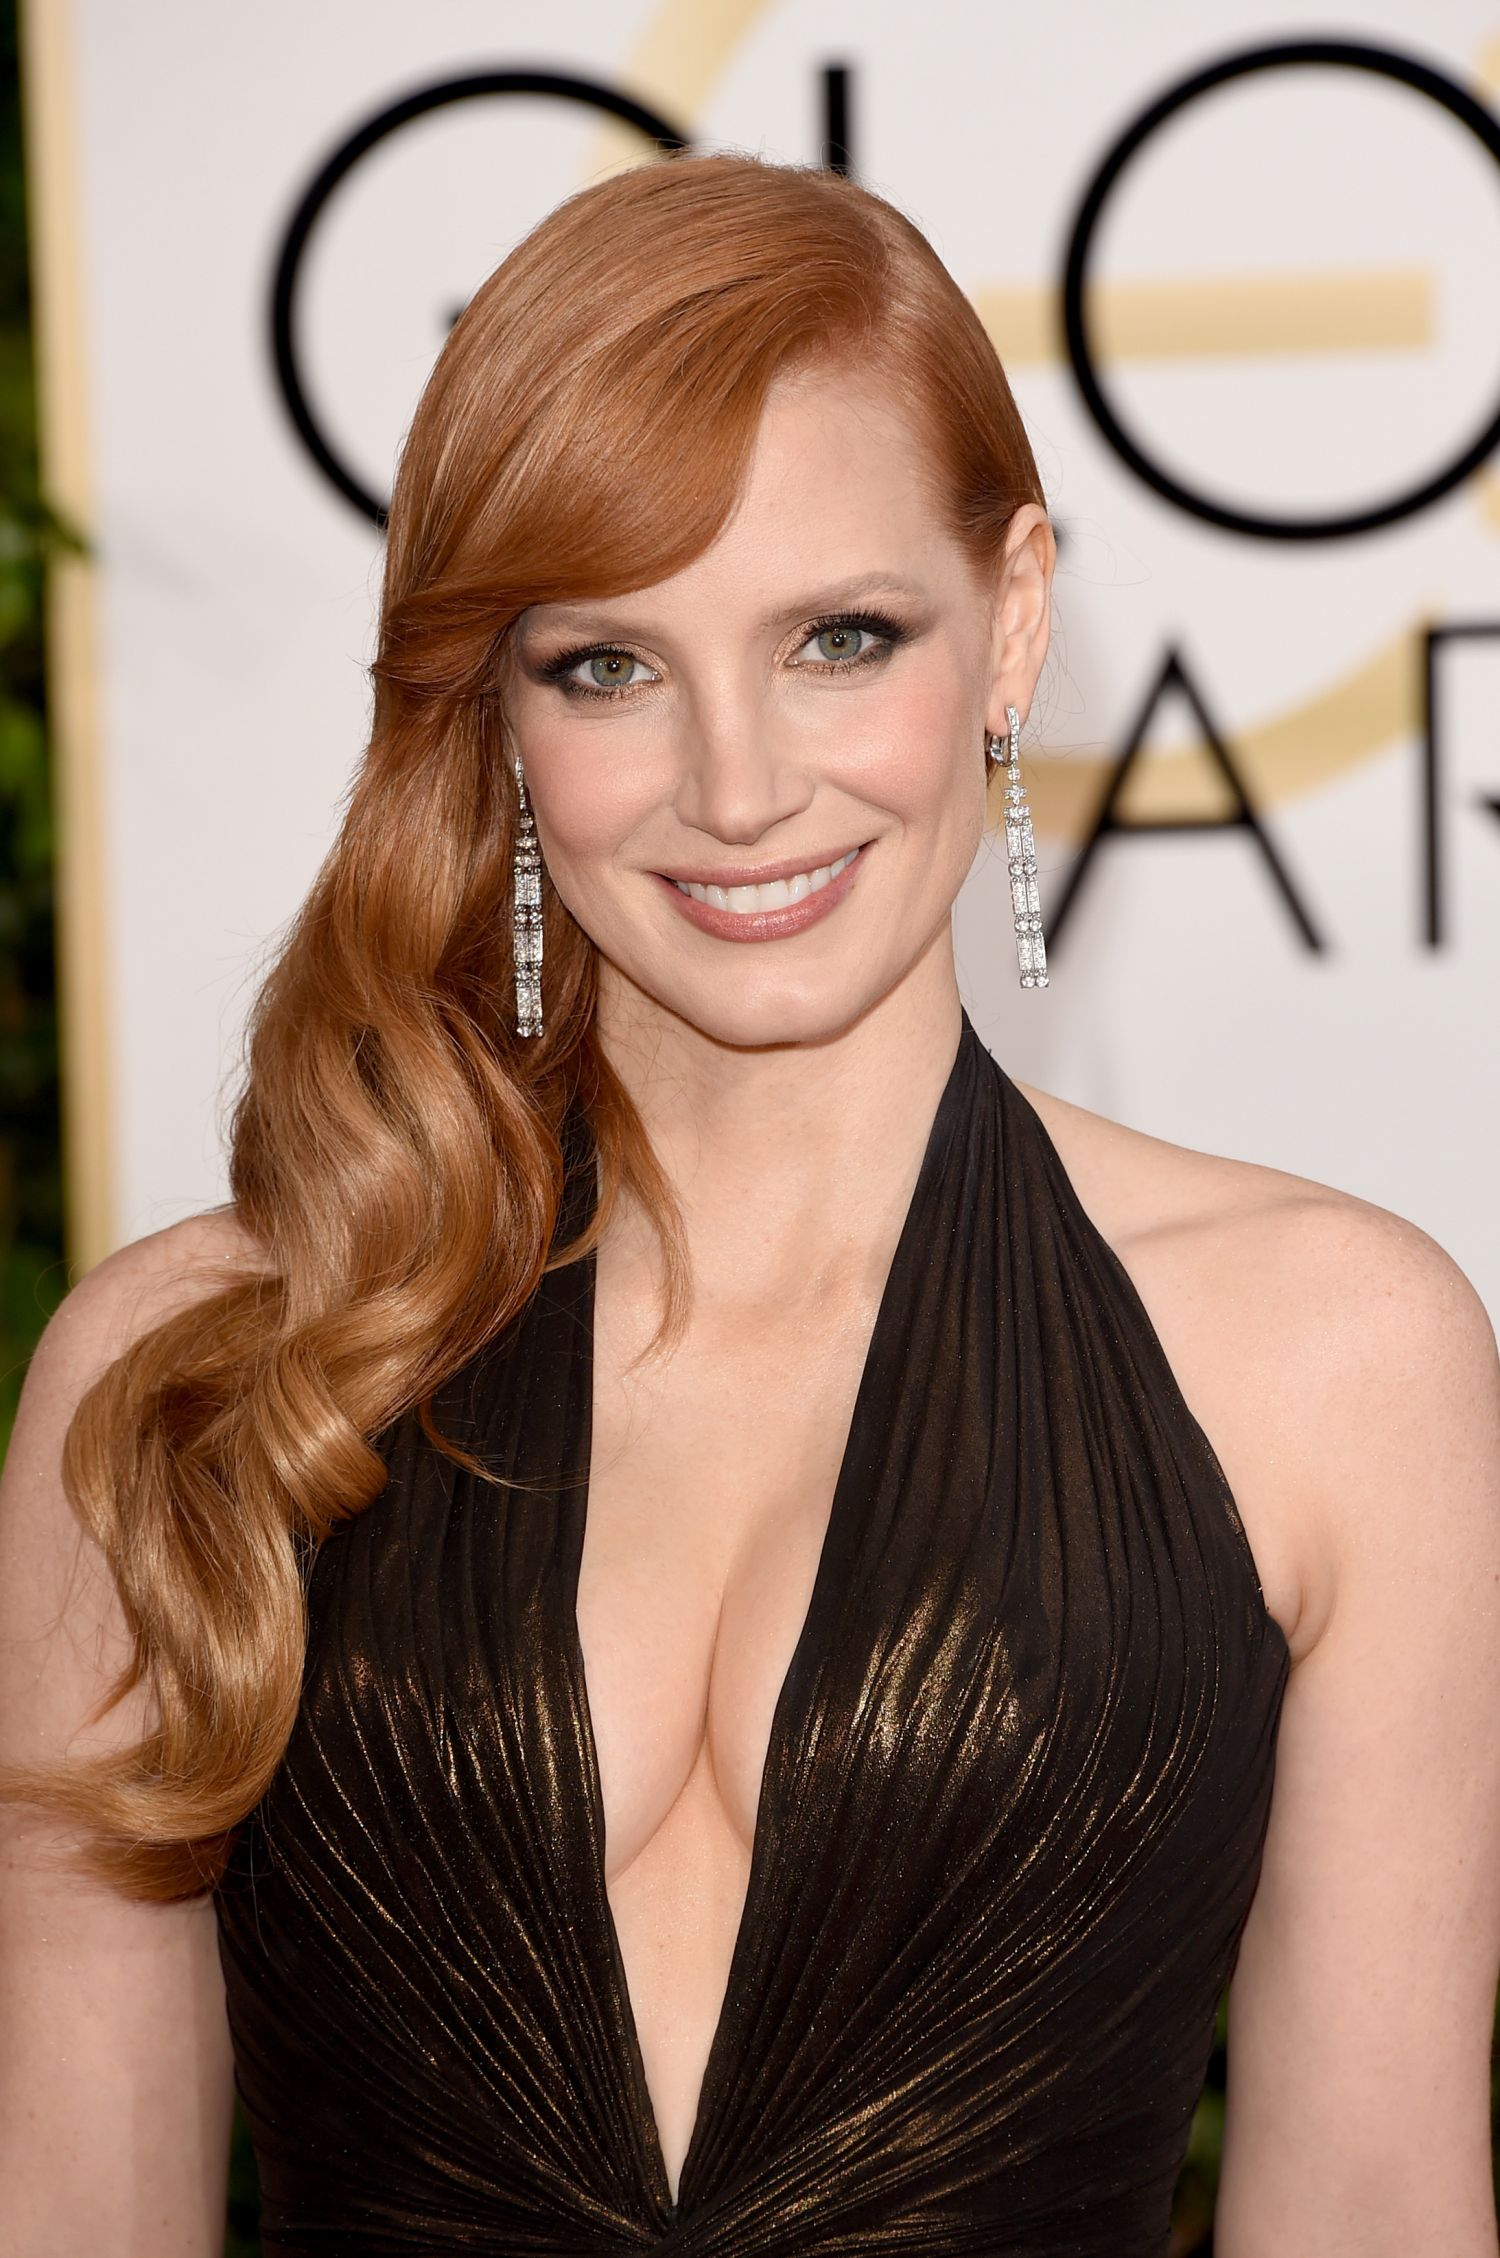 Jessica-Chastain-cleavage-in-The-Martian